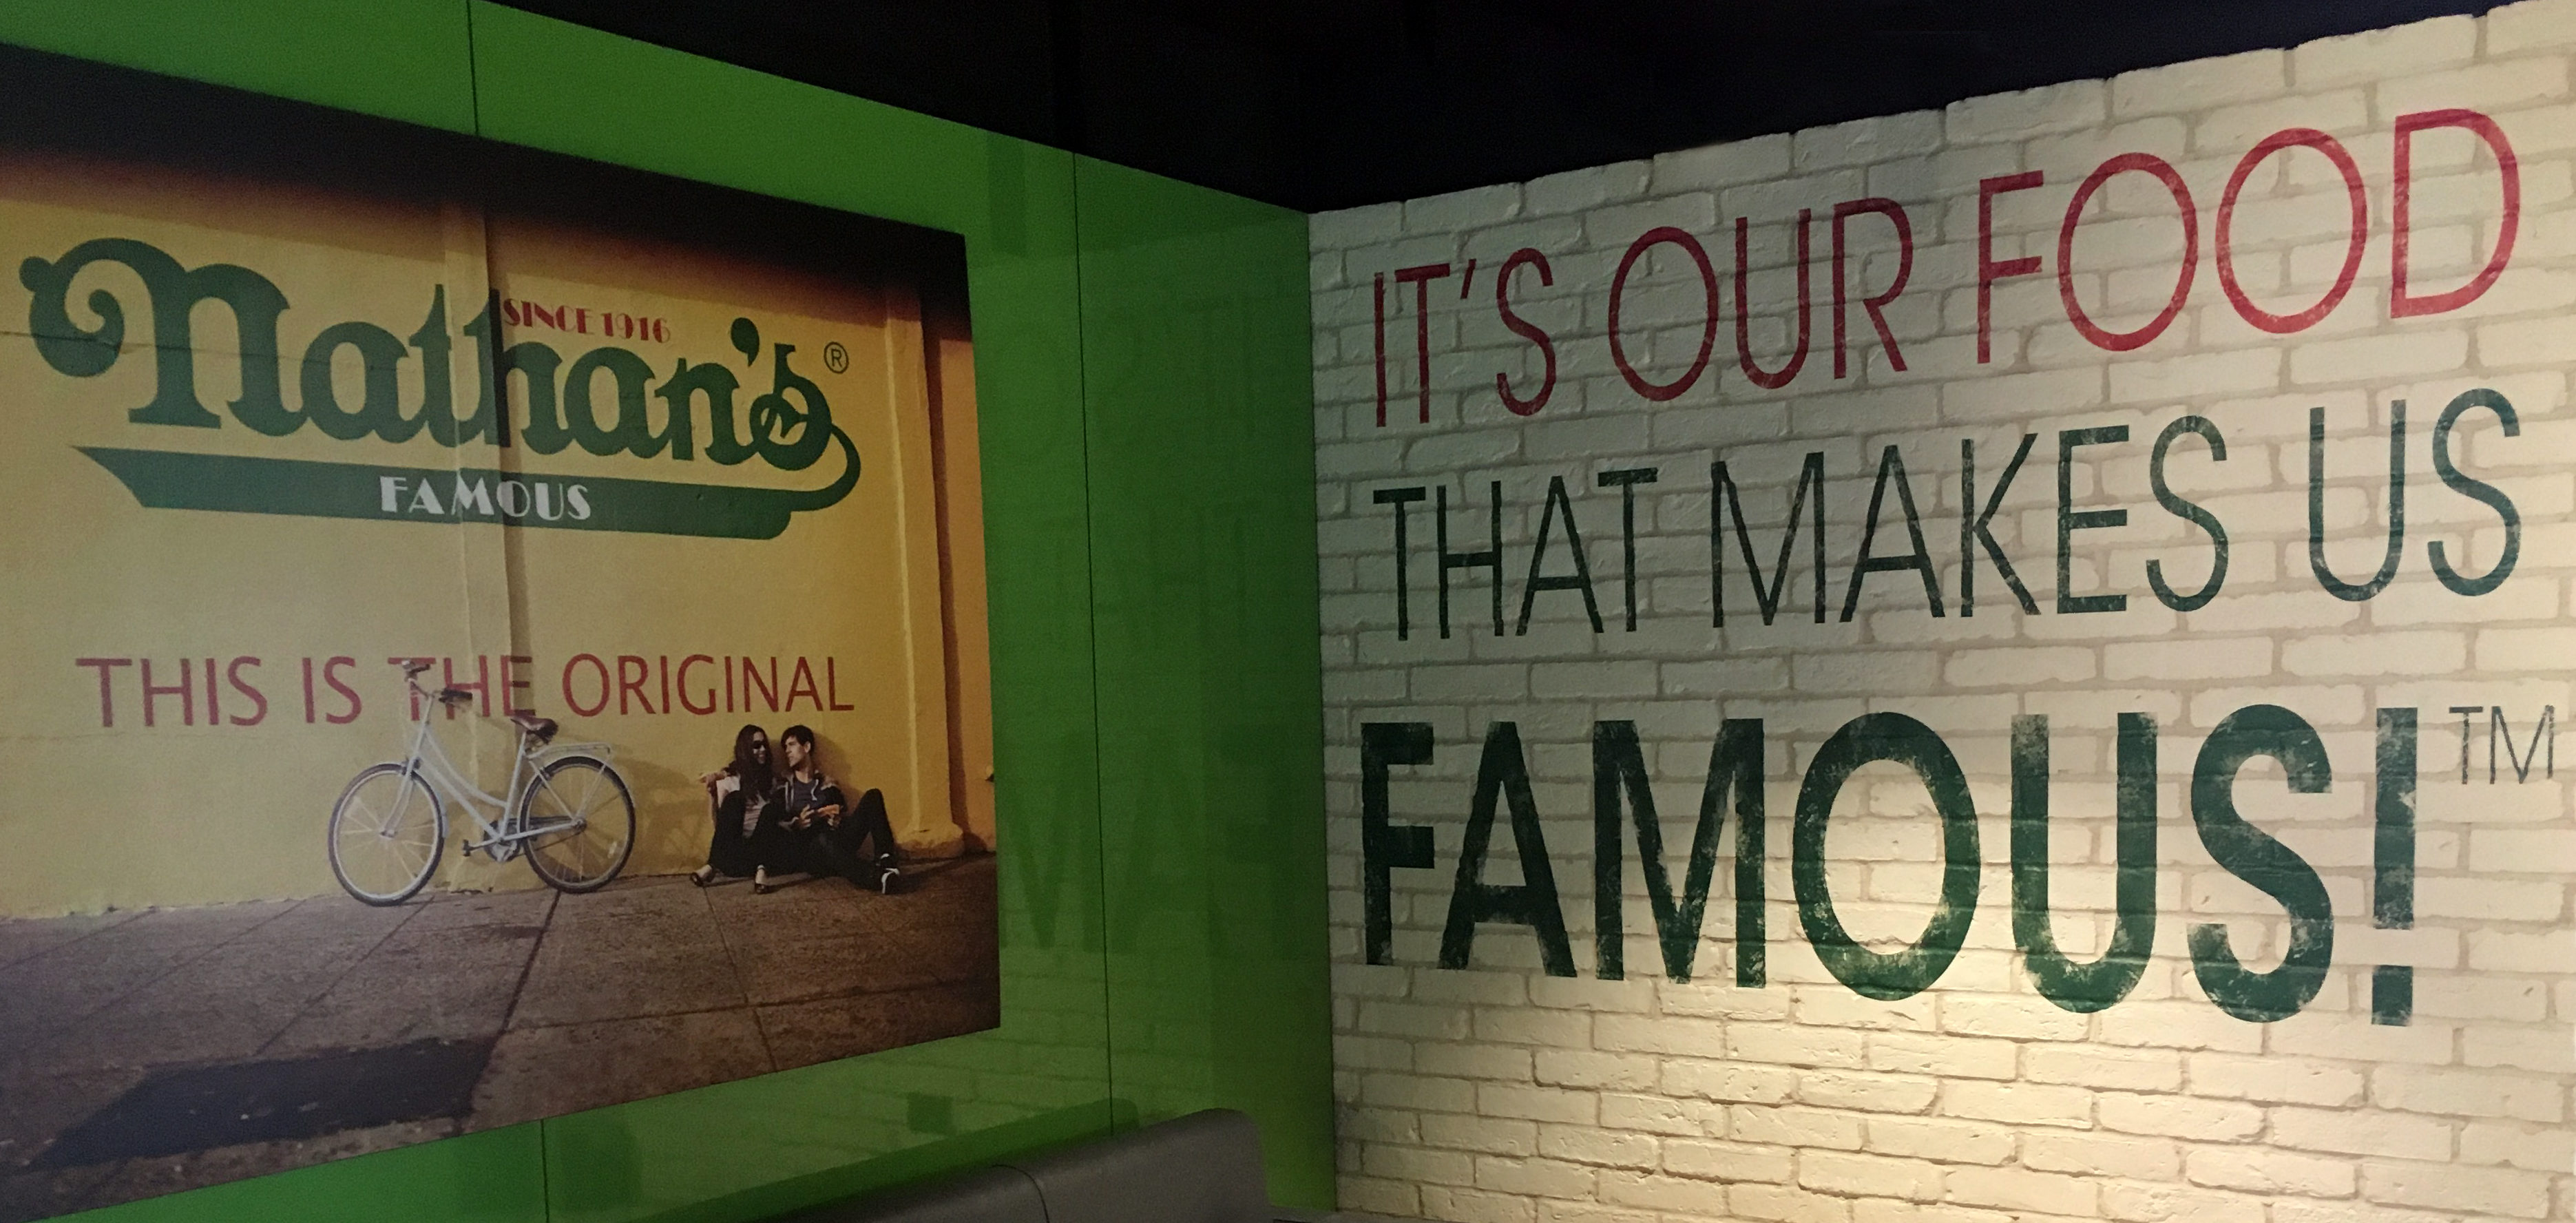 Nathan's Famous interior signage